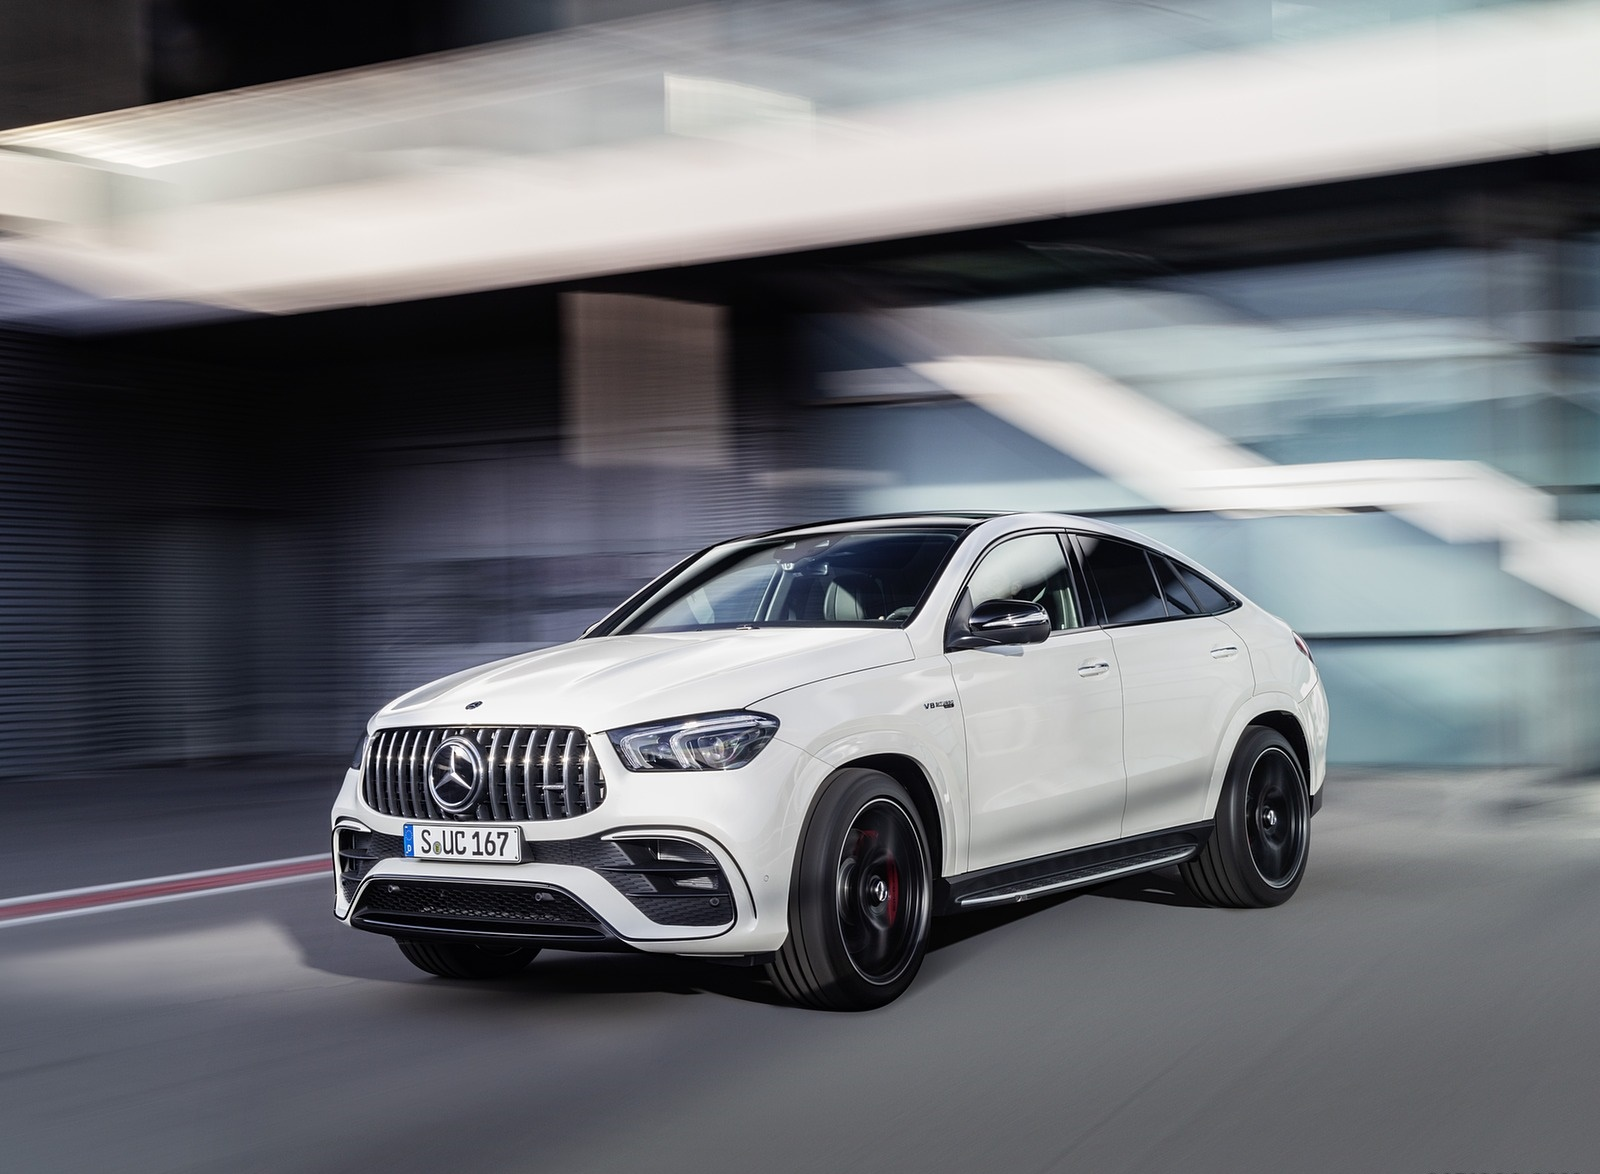 2021 Mercedes-AMG GLE 63 S 4MATIC+ Coupe (Color: Diamond White) Front Three-Quarter Wallpapers (1)